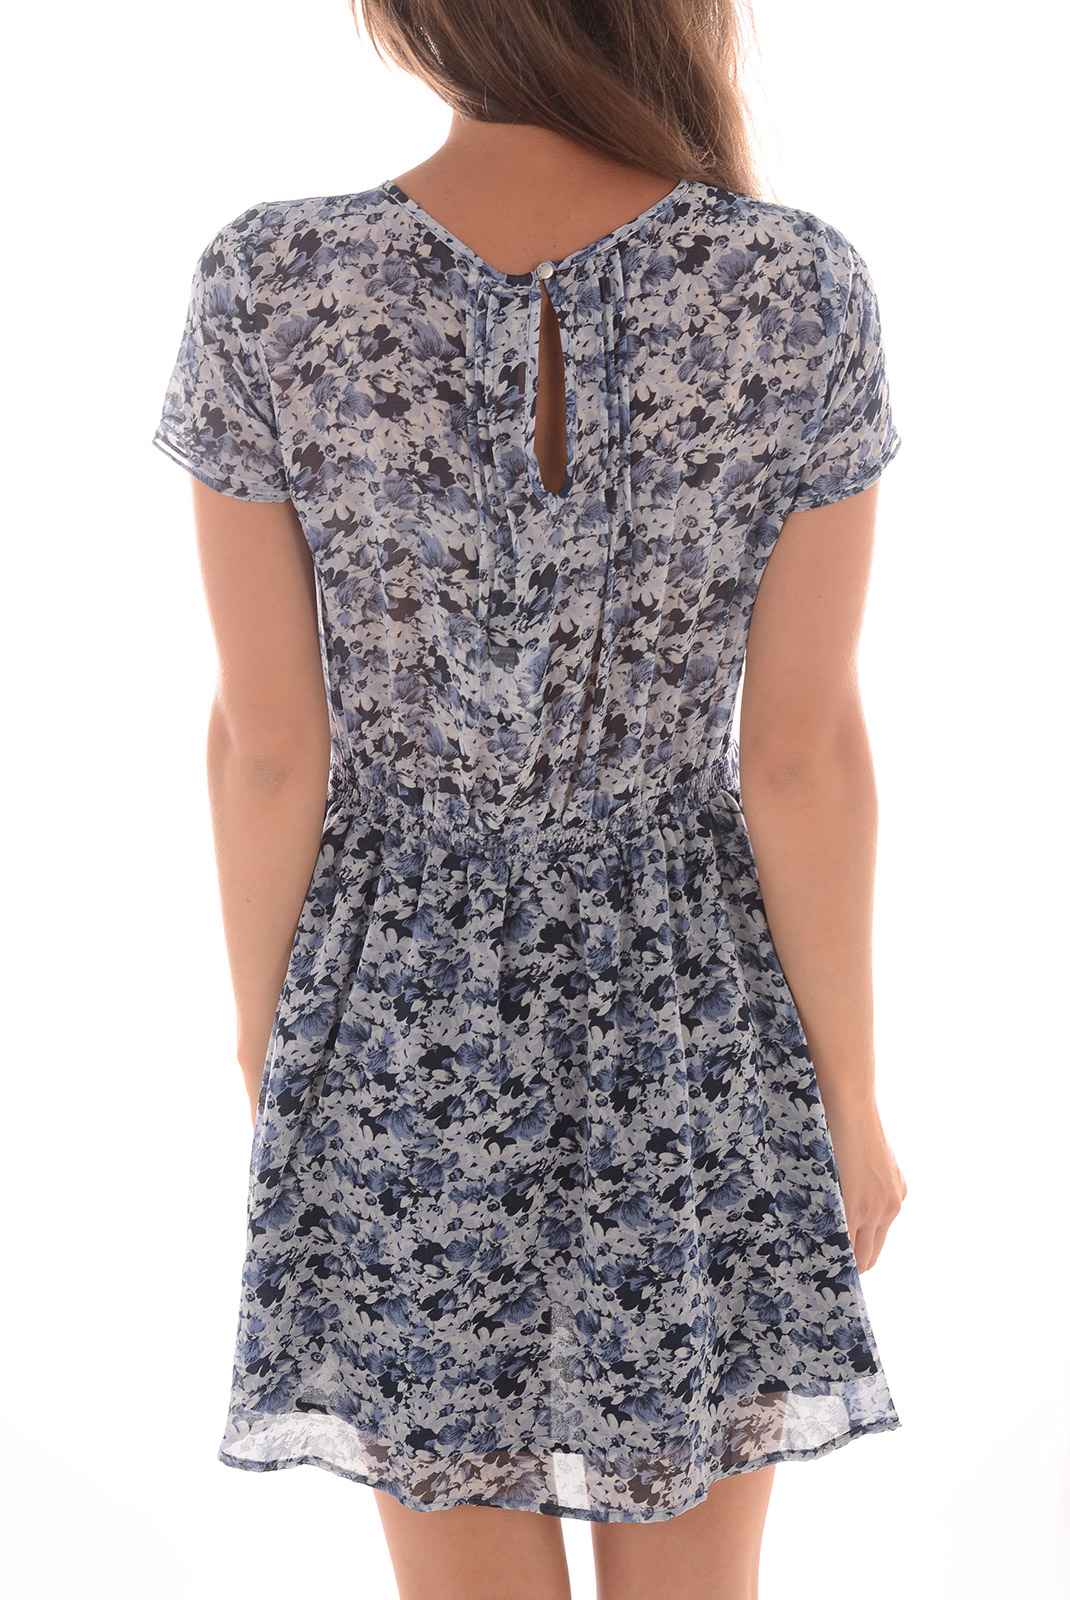 Robes  Pepe jeans PL951338 DUSTIN 594 DULWICH